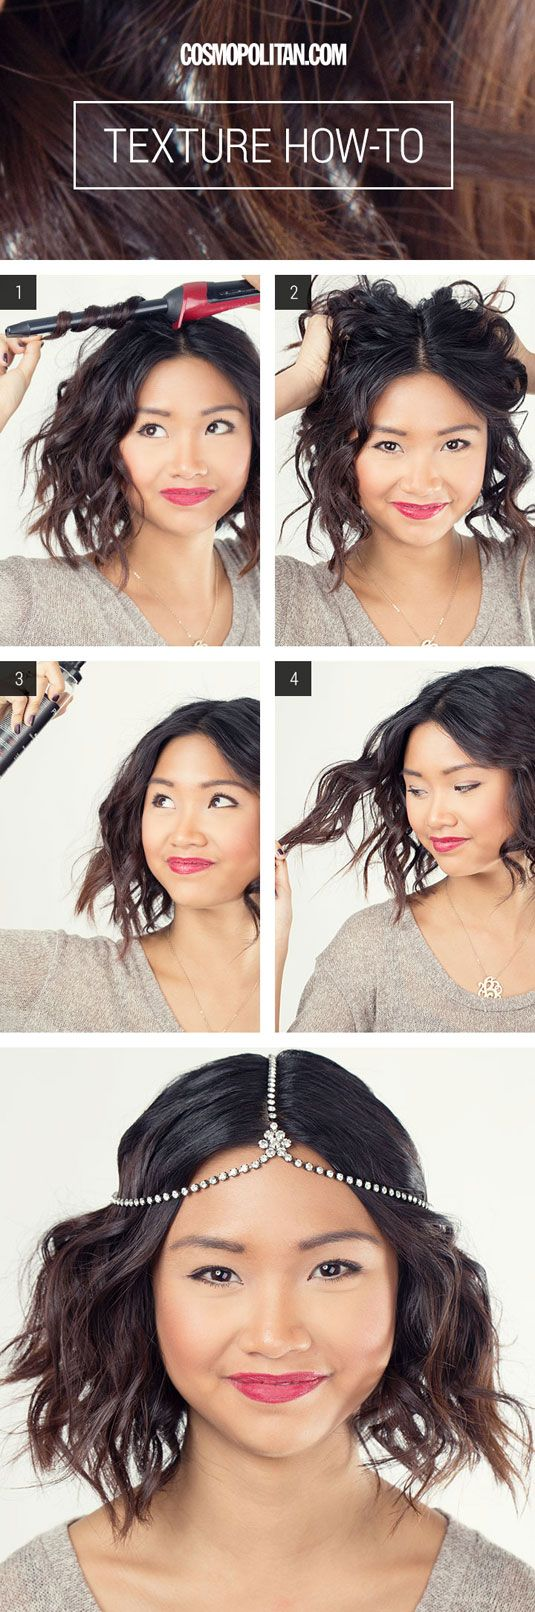 Finally, some short hair hacks you'll actually find useful!